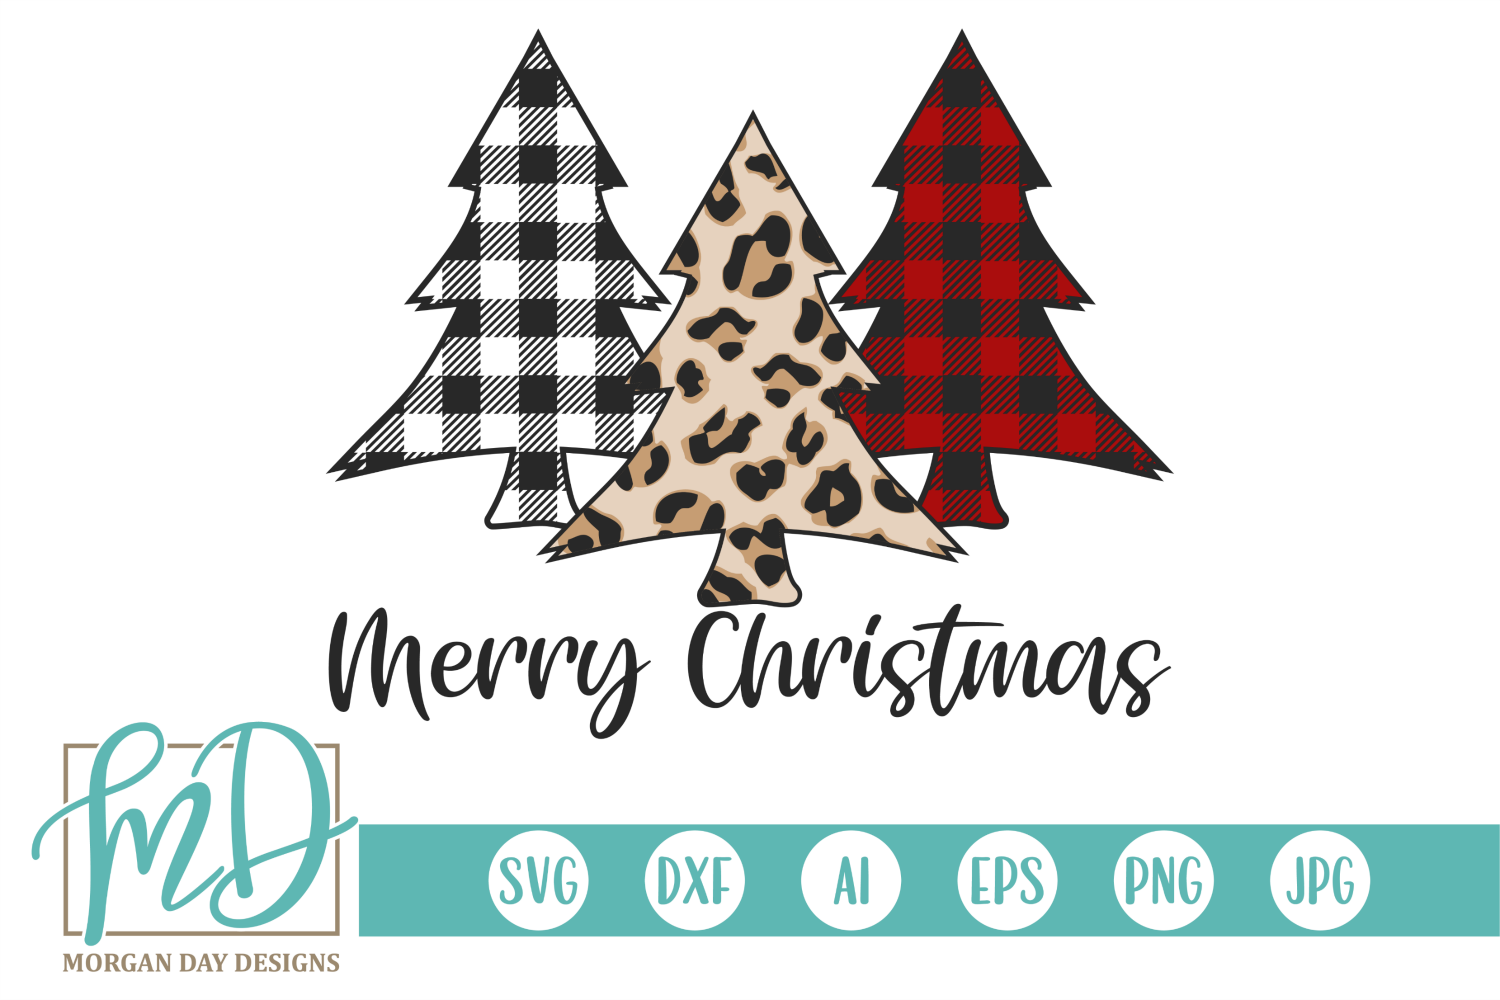 Download Free Merry Christmas Graphic By Morgan Day Designs Creative Fabrica for Cricut Explore, Silhouette and other cutting machines.